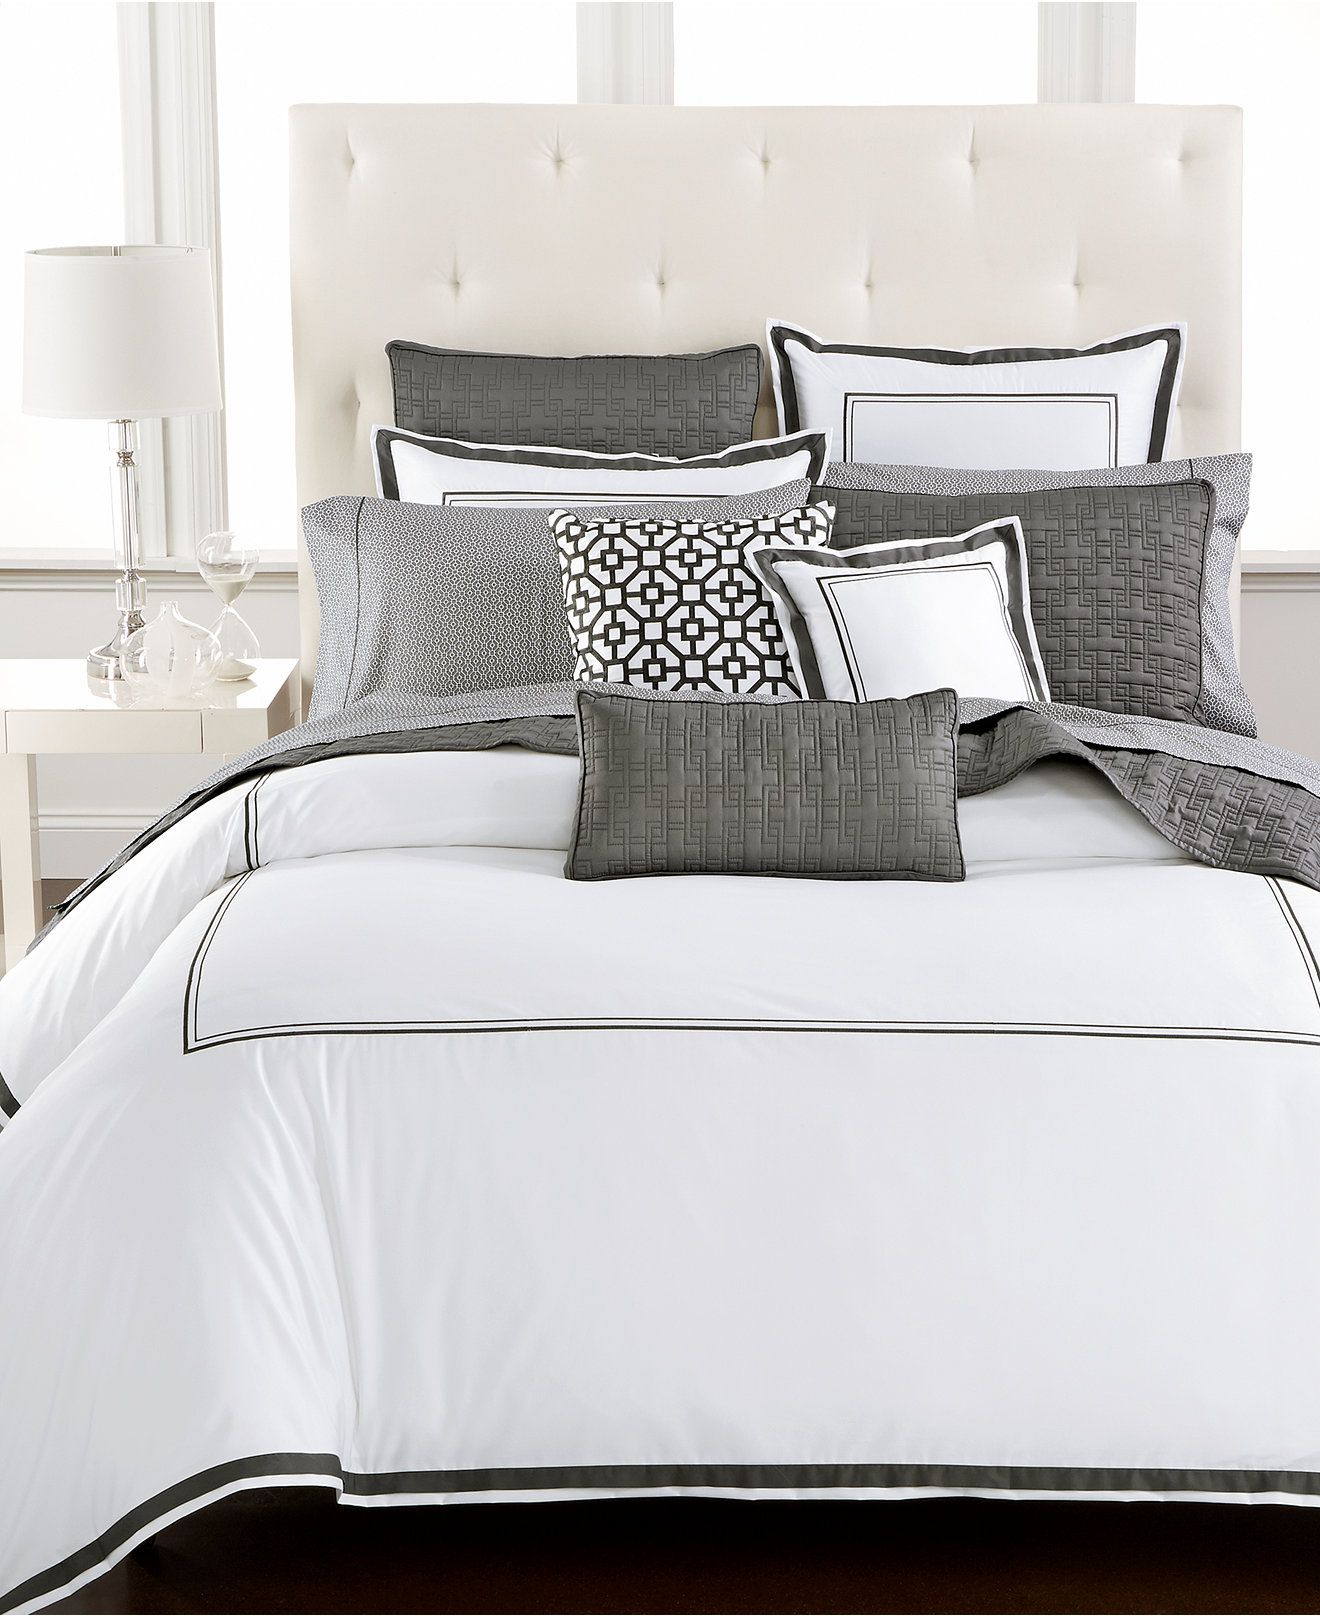 Hotel Bedrooms Collection Amazing Hotel Collection Embroidered Frame Bedding Collection Created For . Inspiration